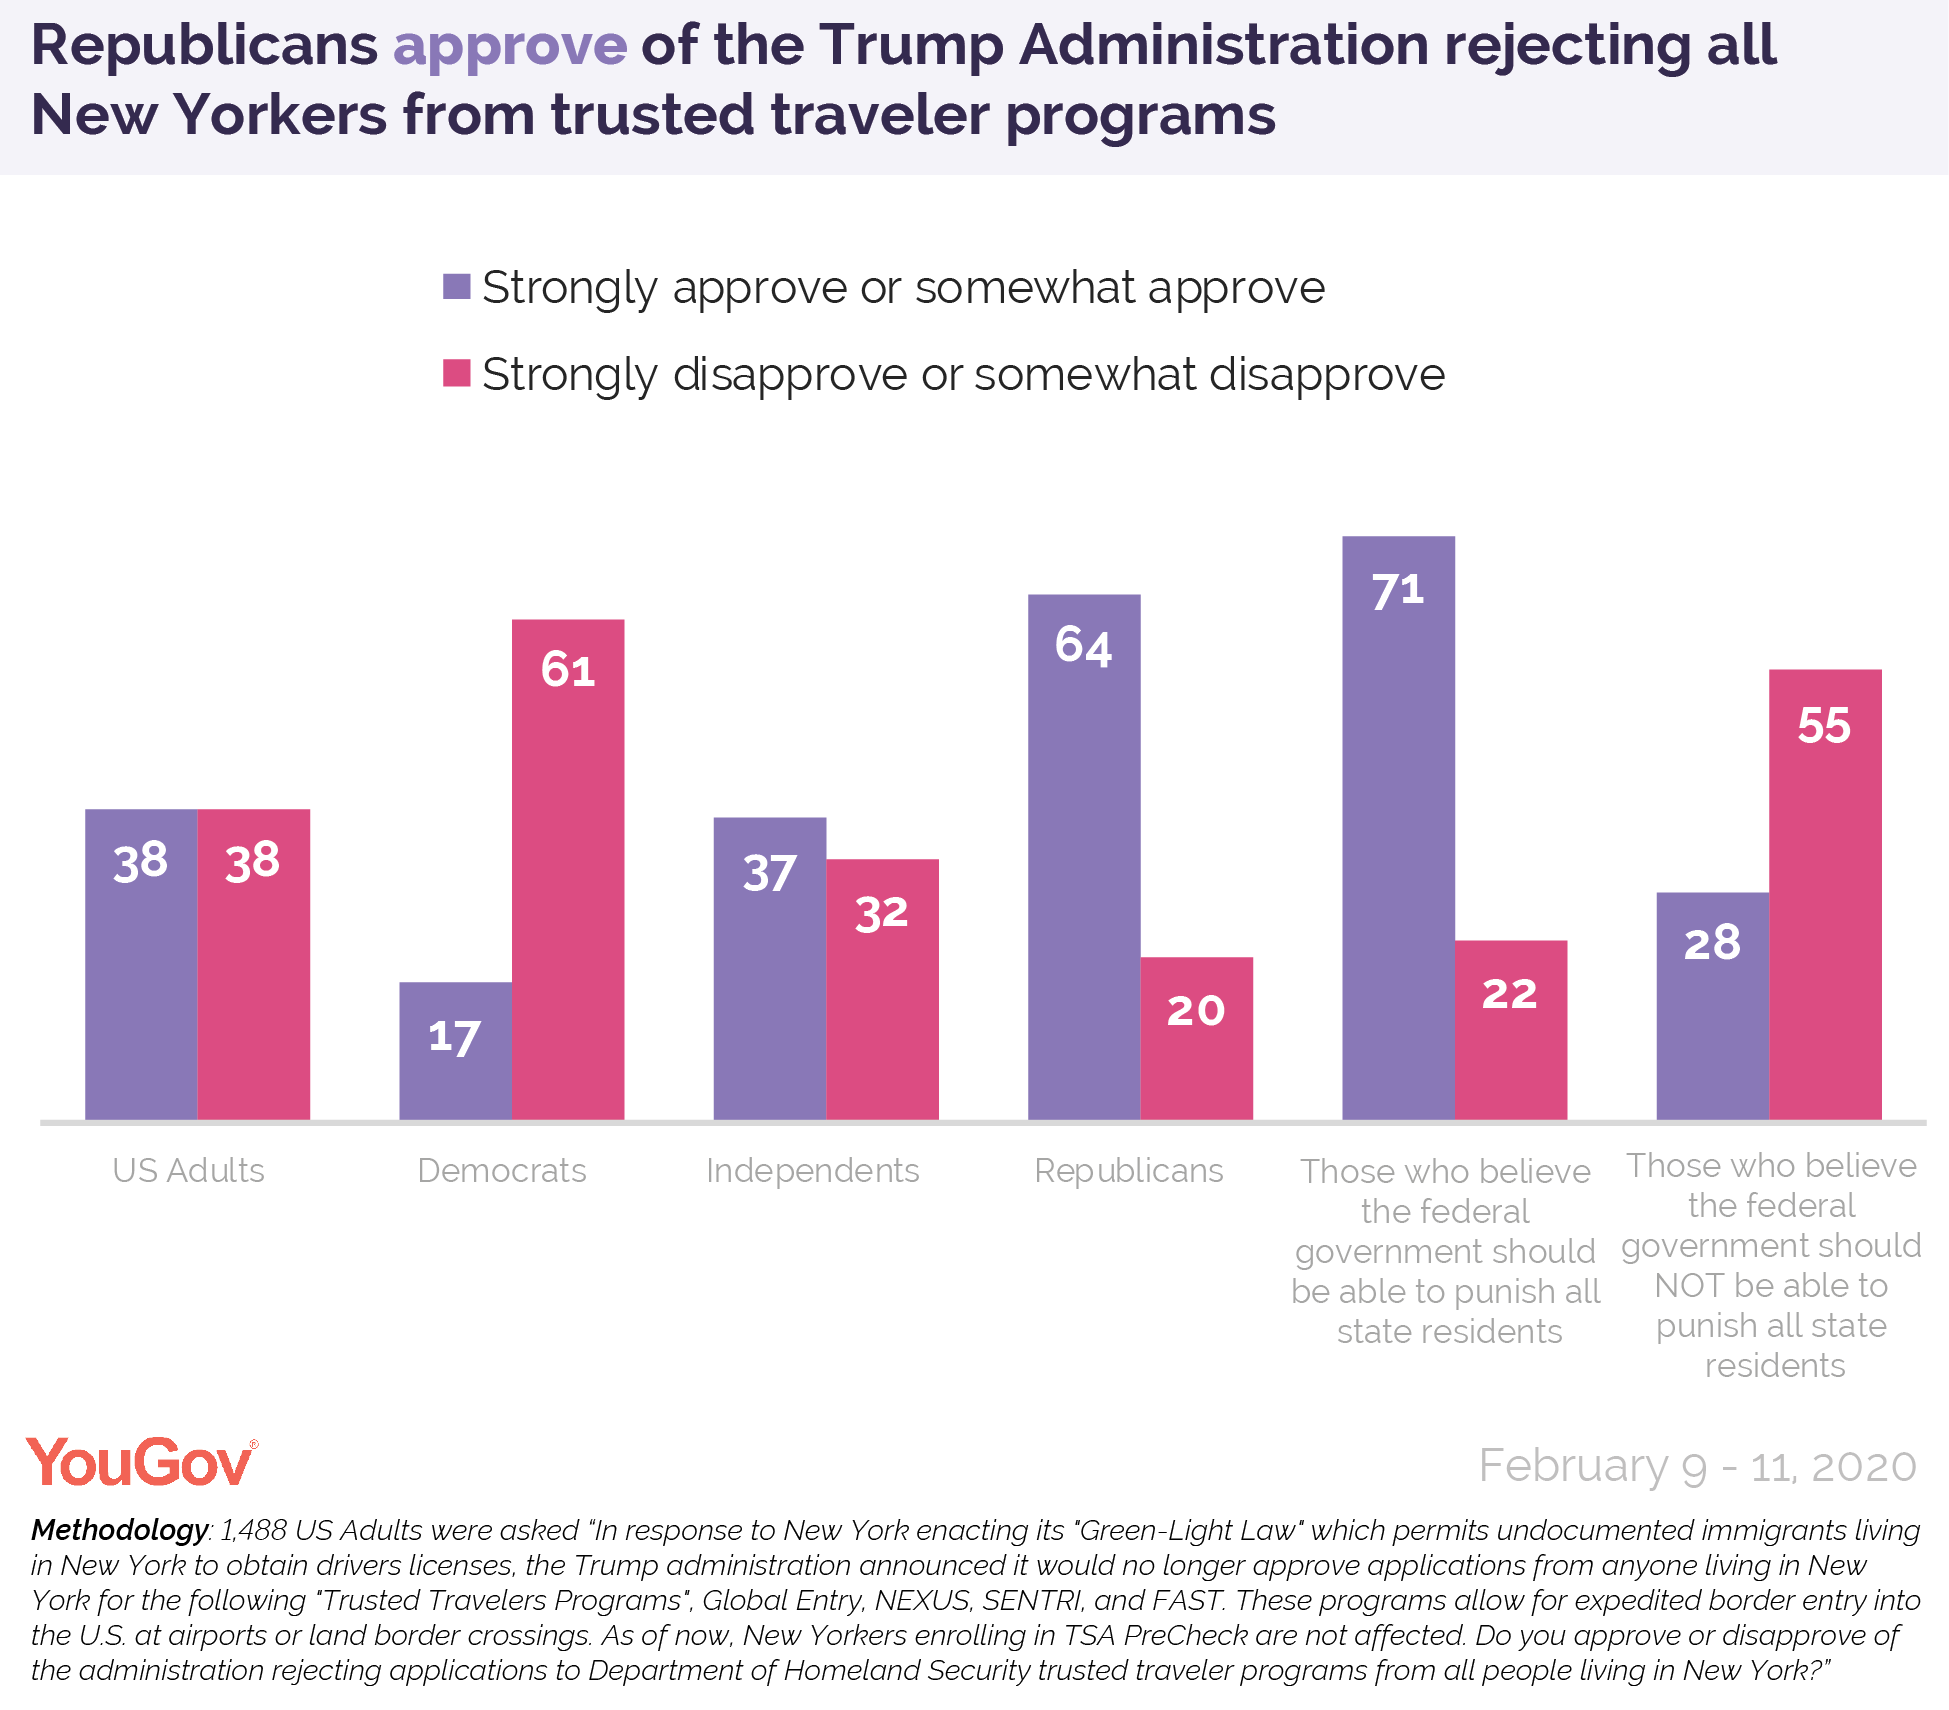 Republicans approve of the Trump Administration rejecting all New Yorkers from trusted traveler programs